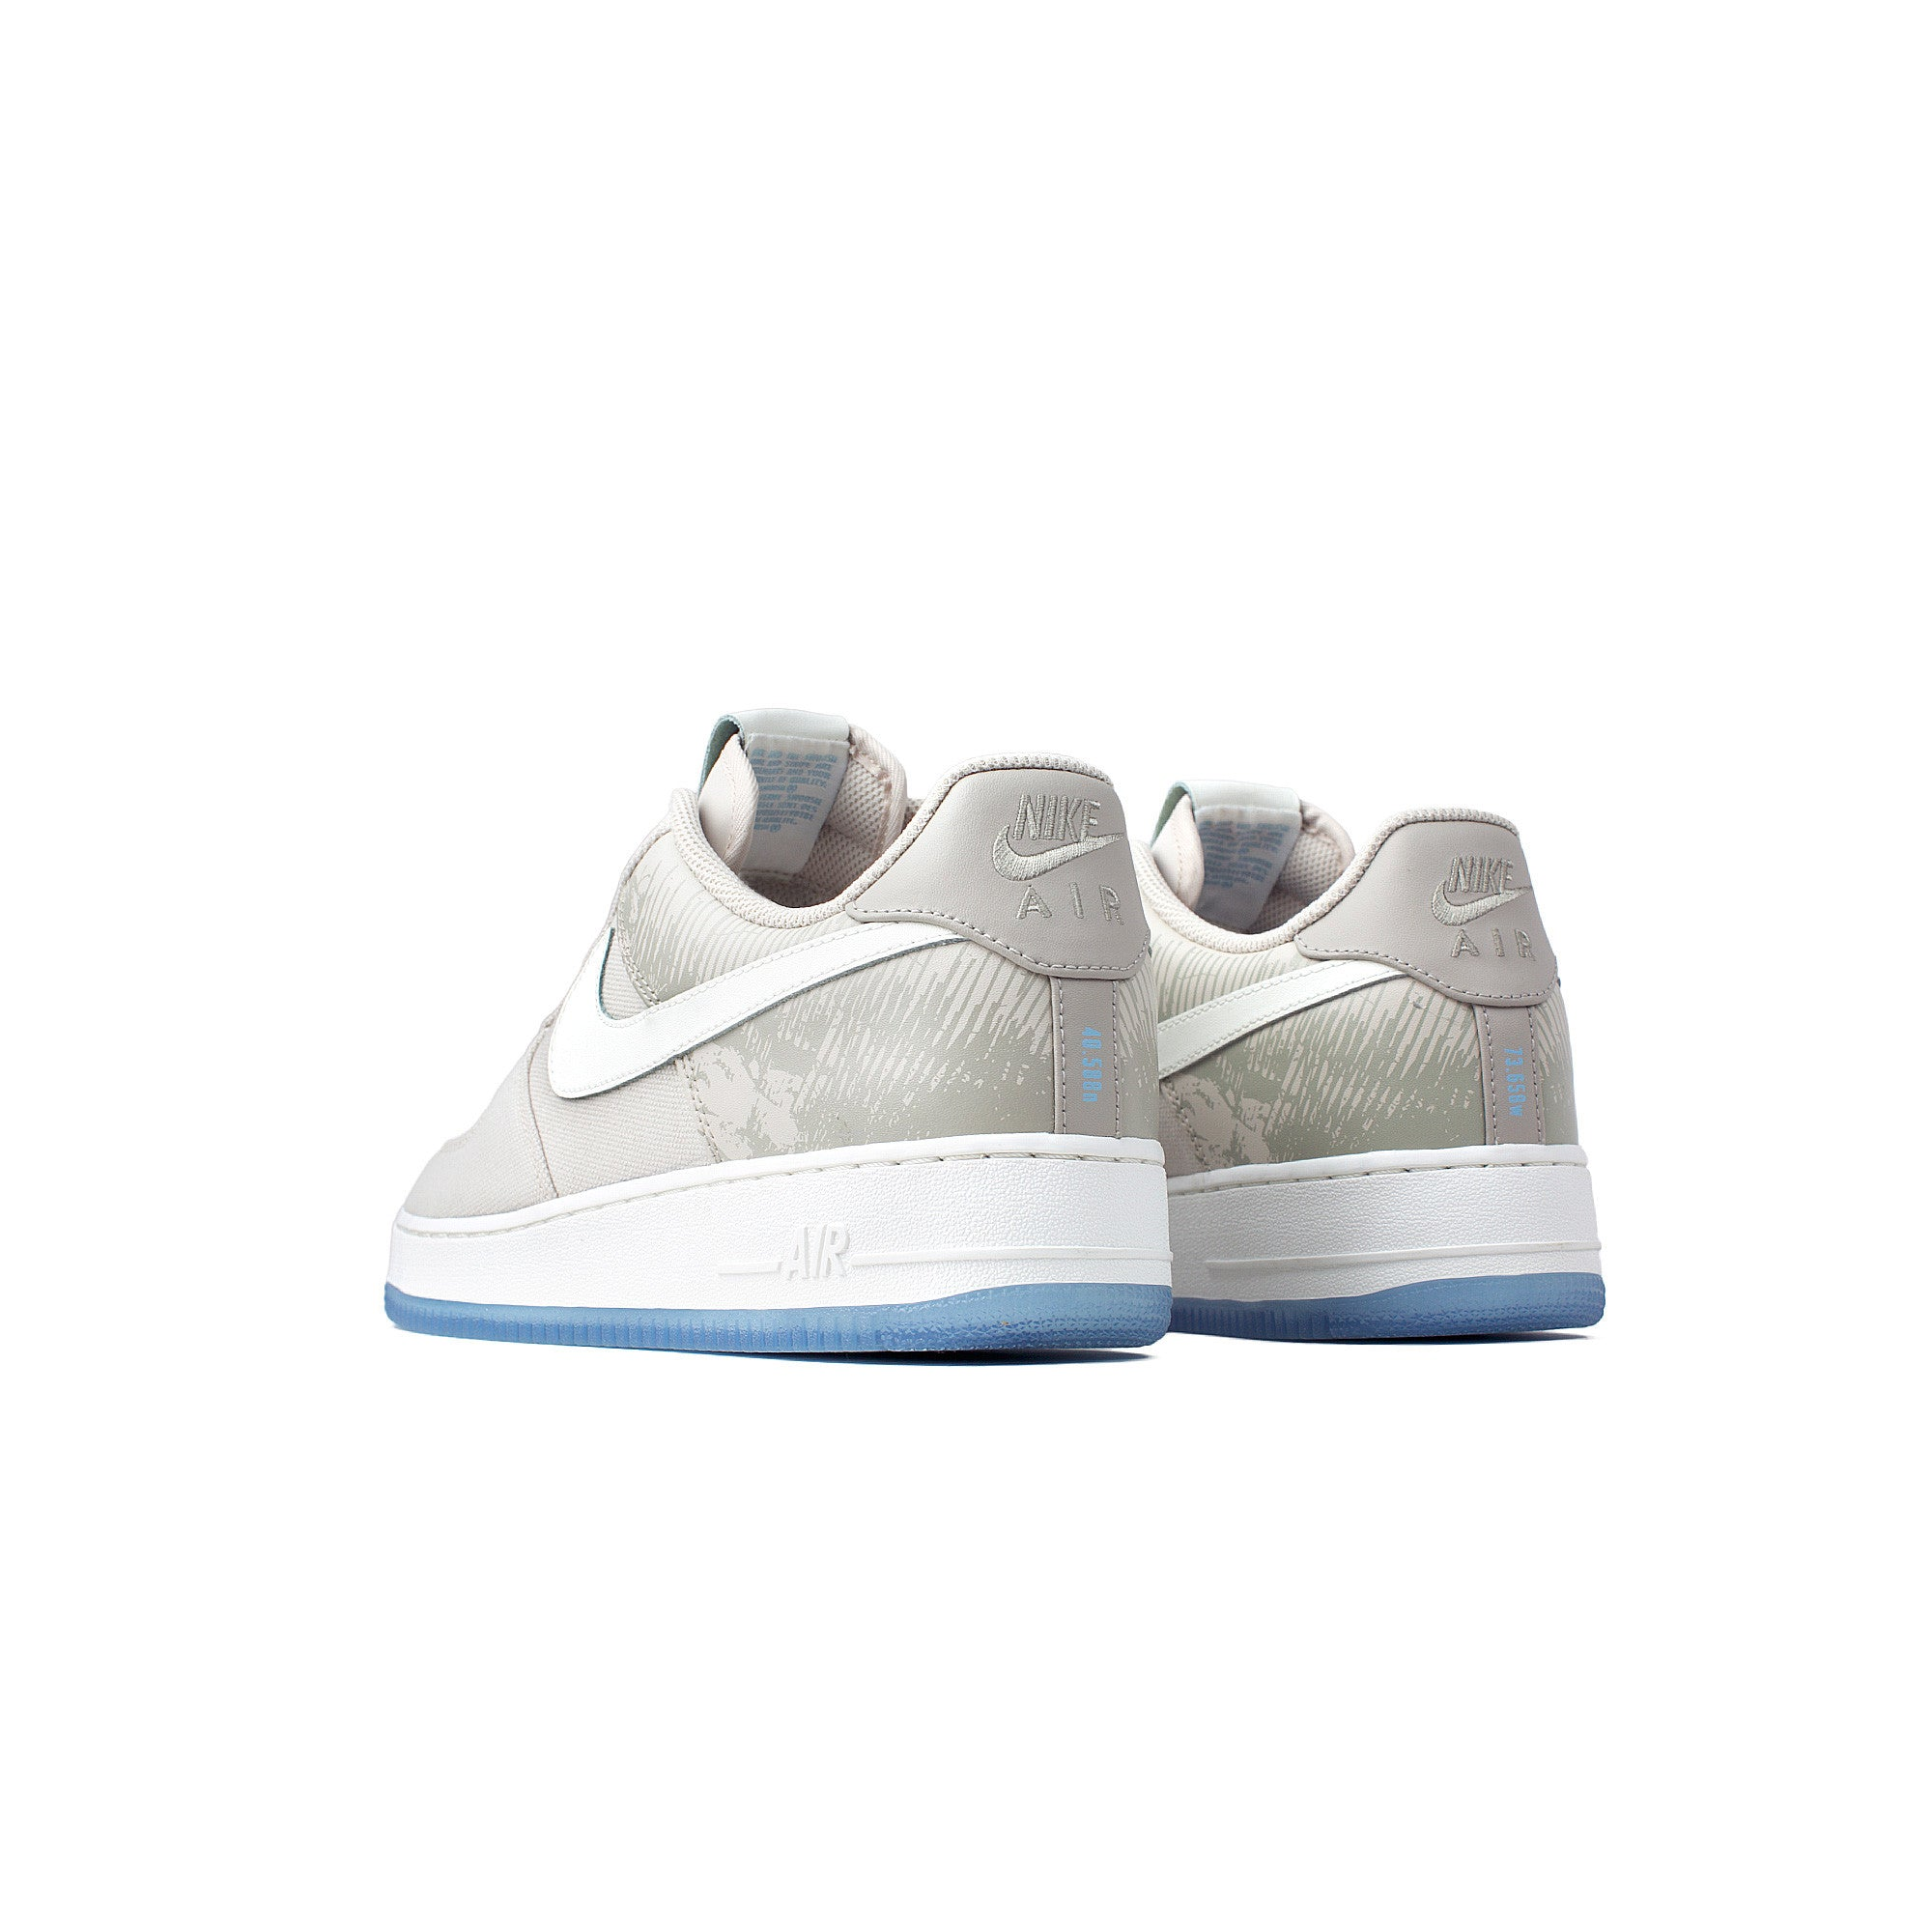 nike air force 1 low jones beach 845053 203 fd3731337